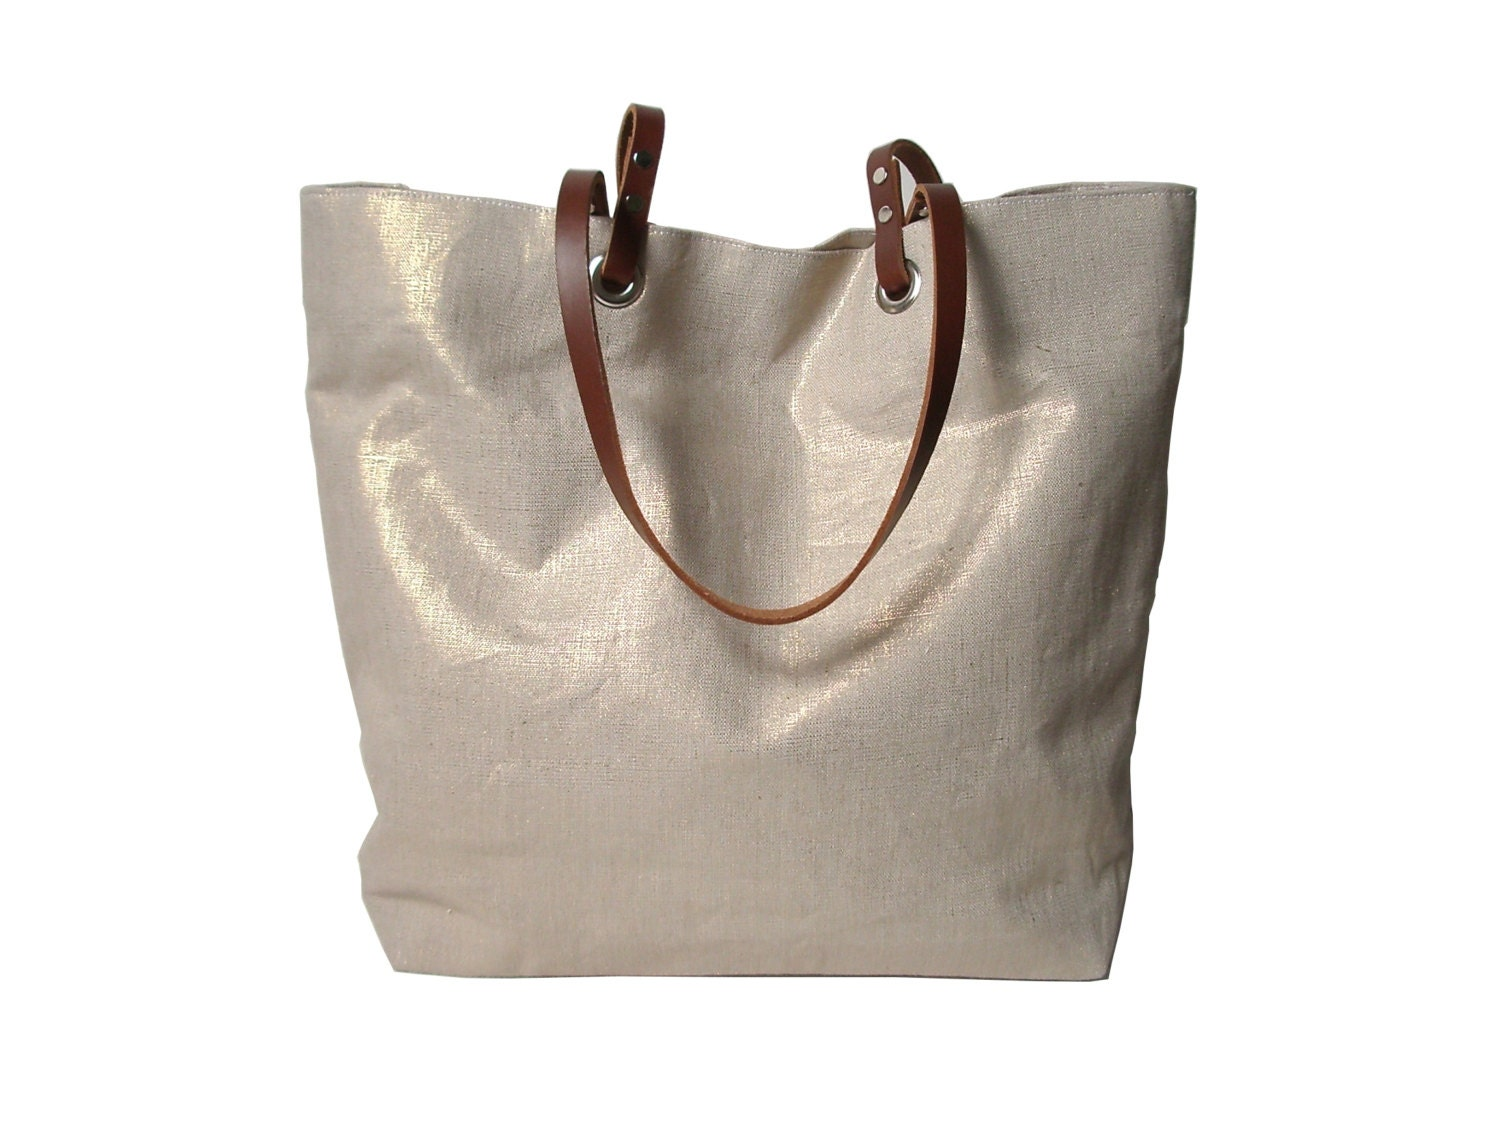 Handbag Beach Bag Metallic Gold Linen Tote Bag Vacation